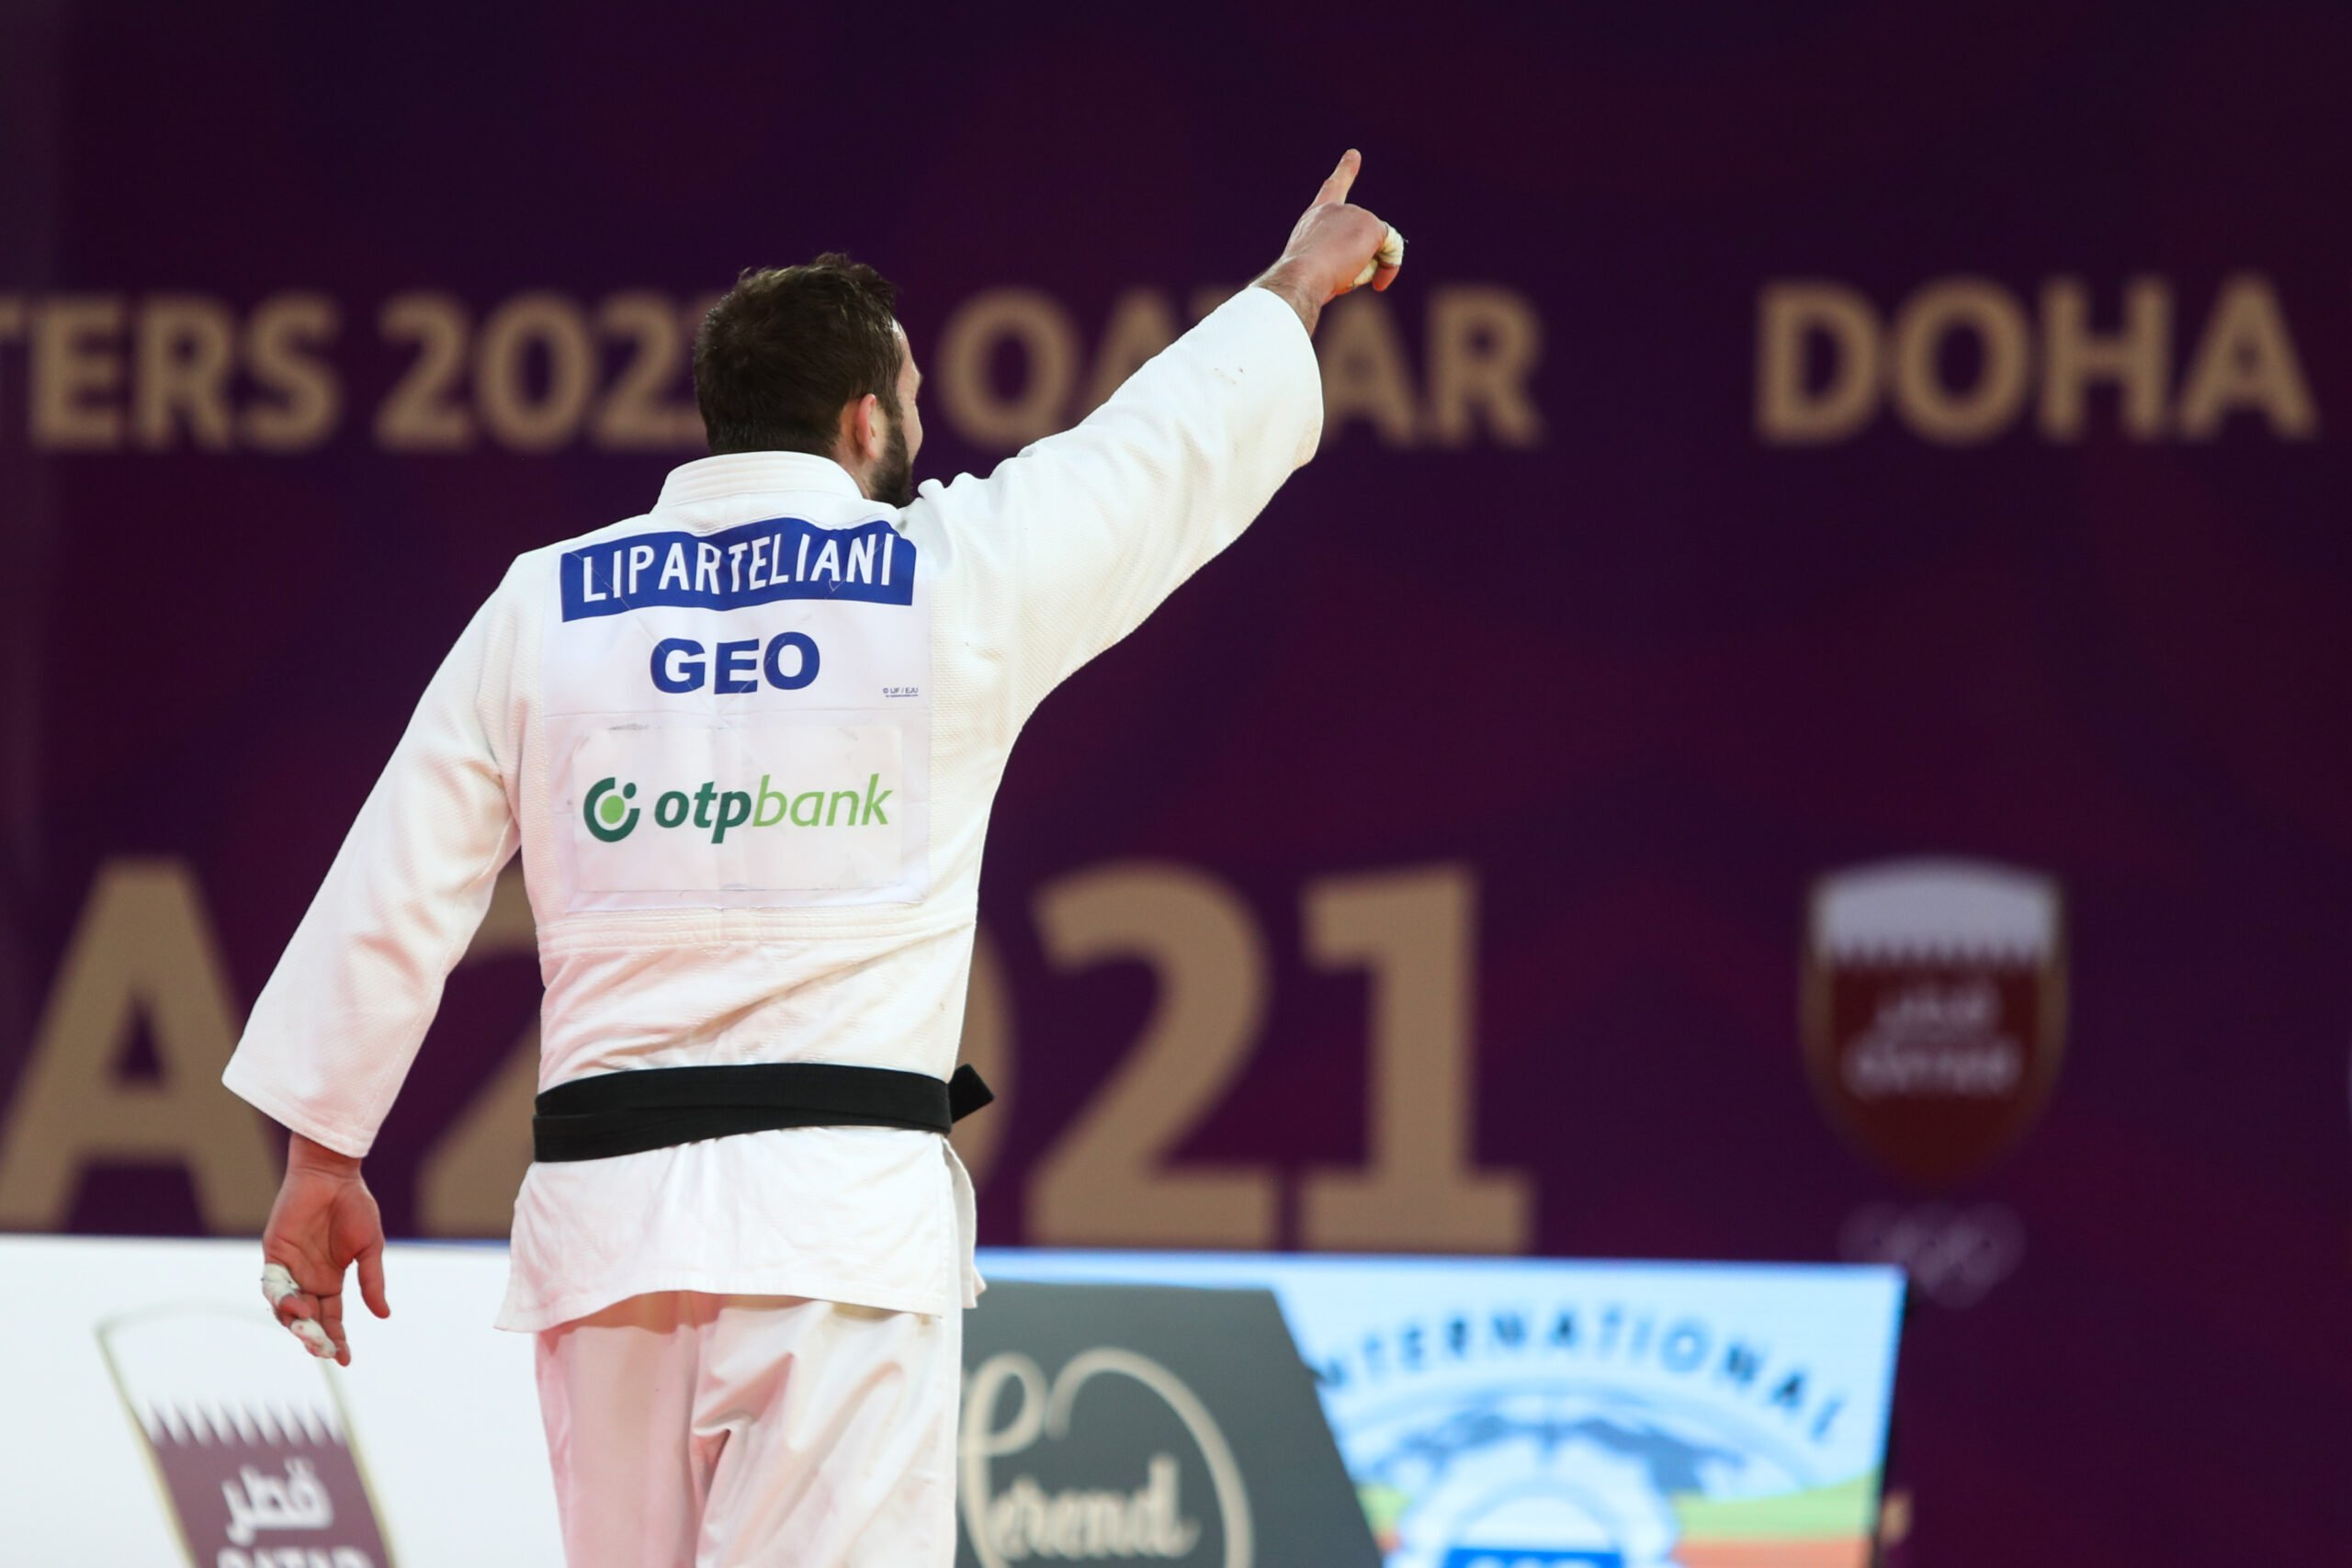 THIRD TIMES A CHARM FOR LIPARTELIANI SCORING DOHA MASTERS TITLE